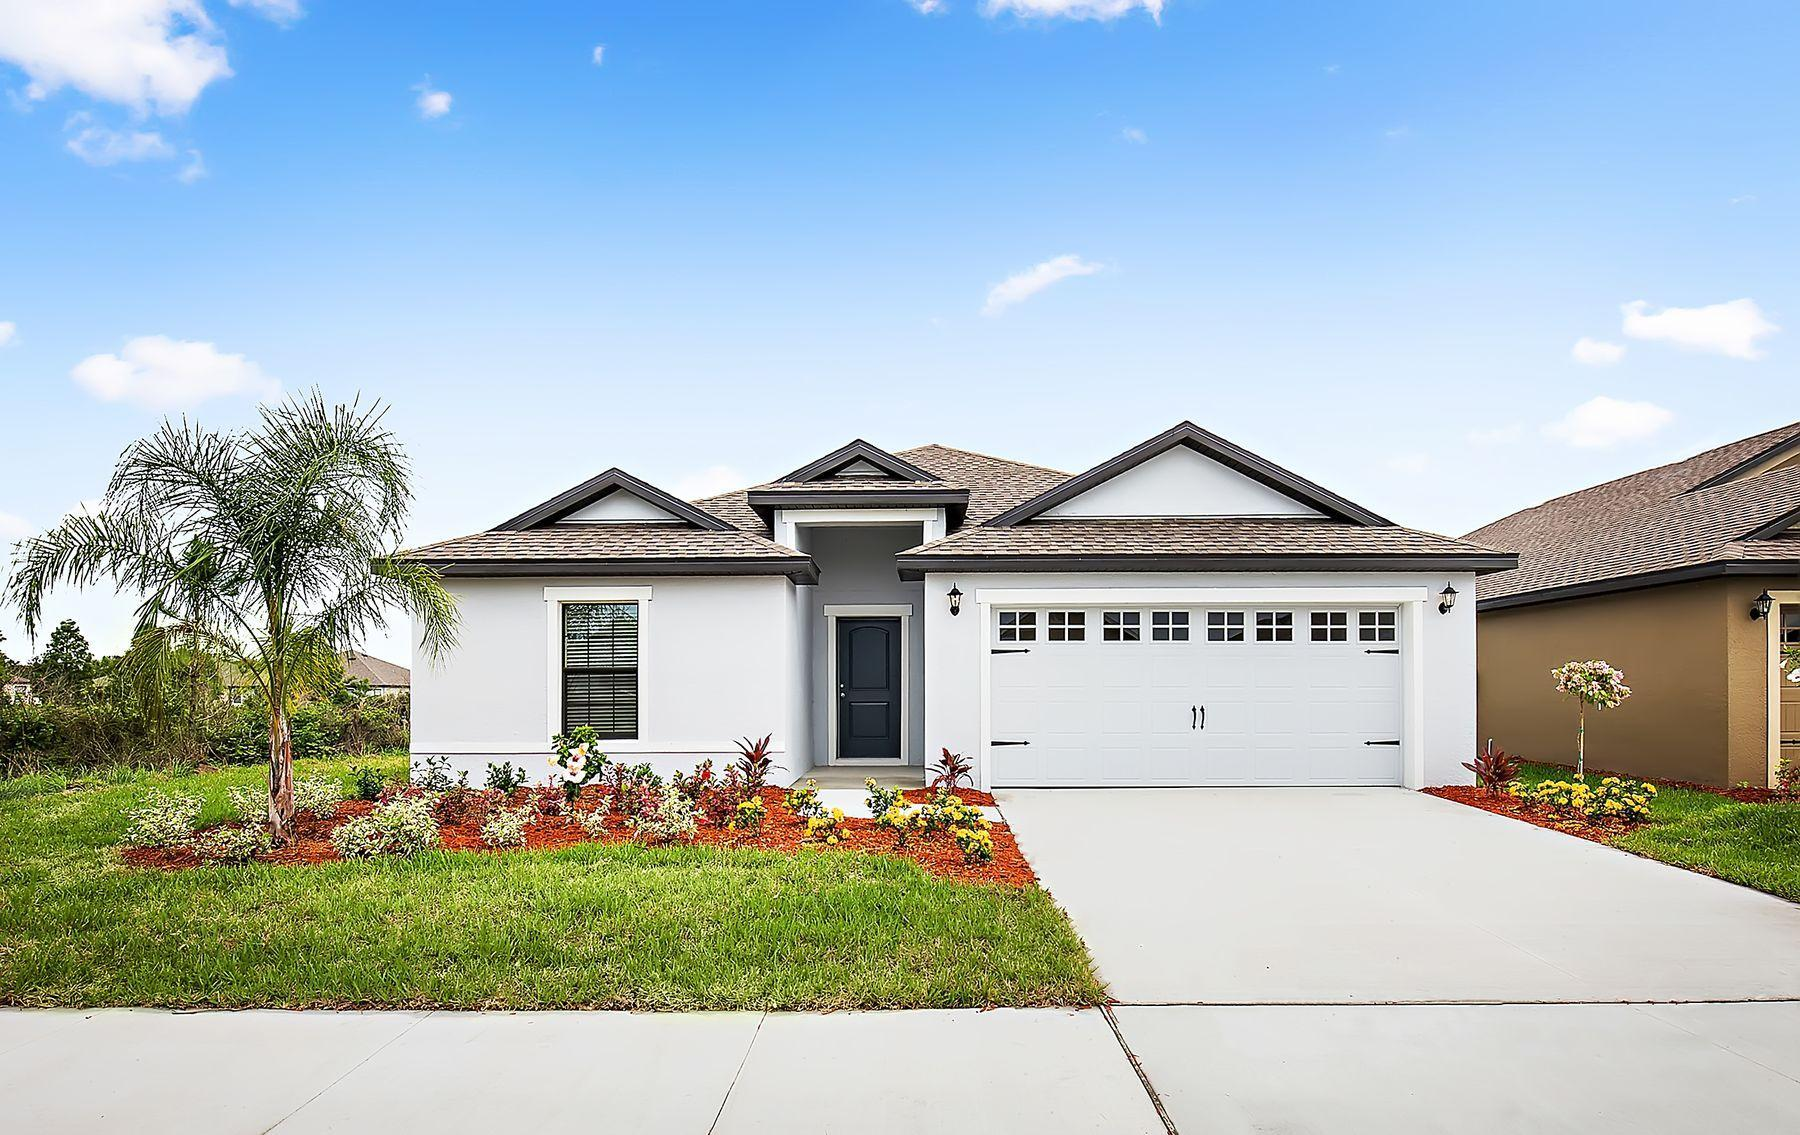 The Capri by LGI Homes:The Capri home comes with lush front yard landscaping